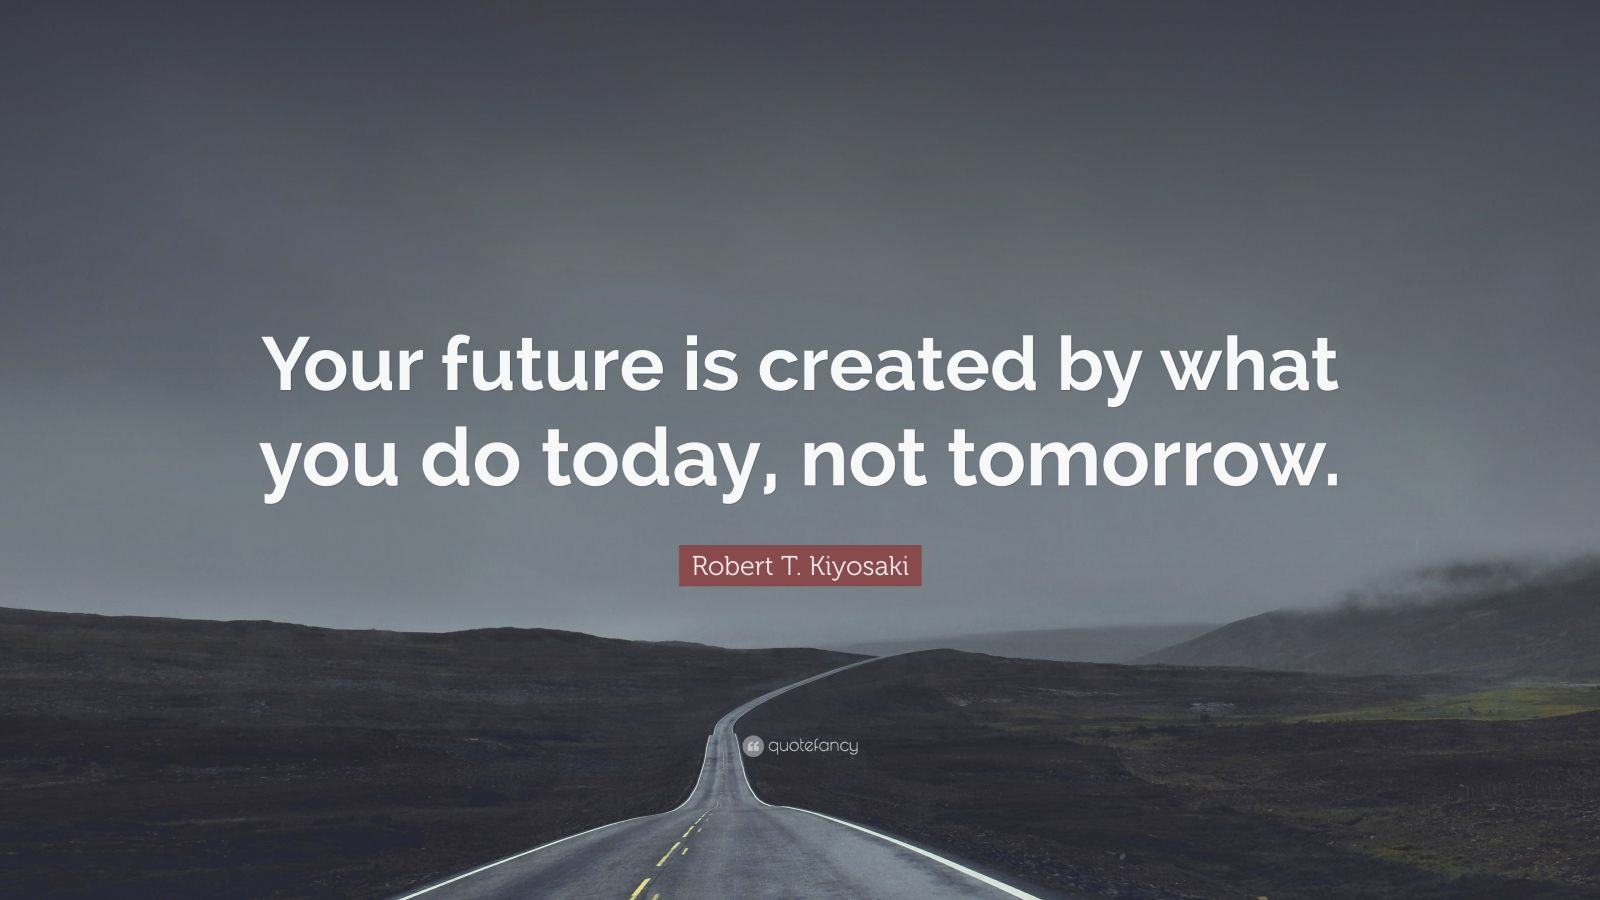 Steve Jobs Motivational Quotes Wallpaper Robert T Kiyosaki Quote Your Future Is Created By What